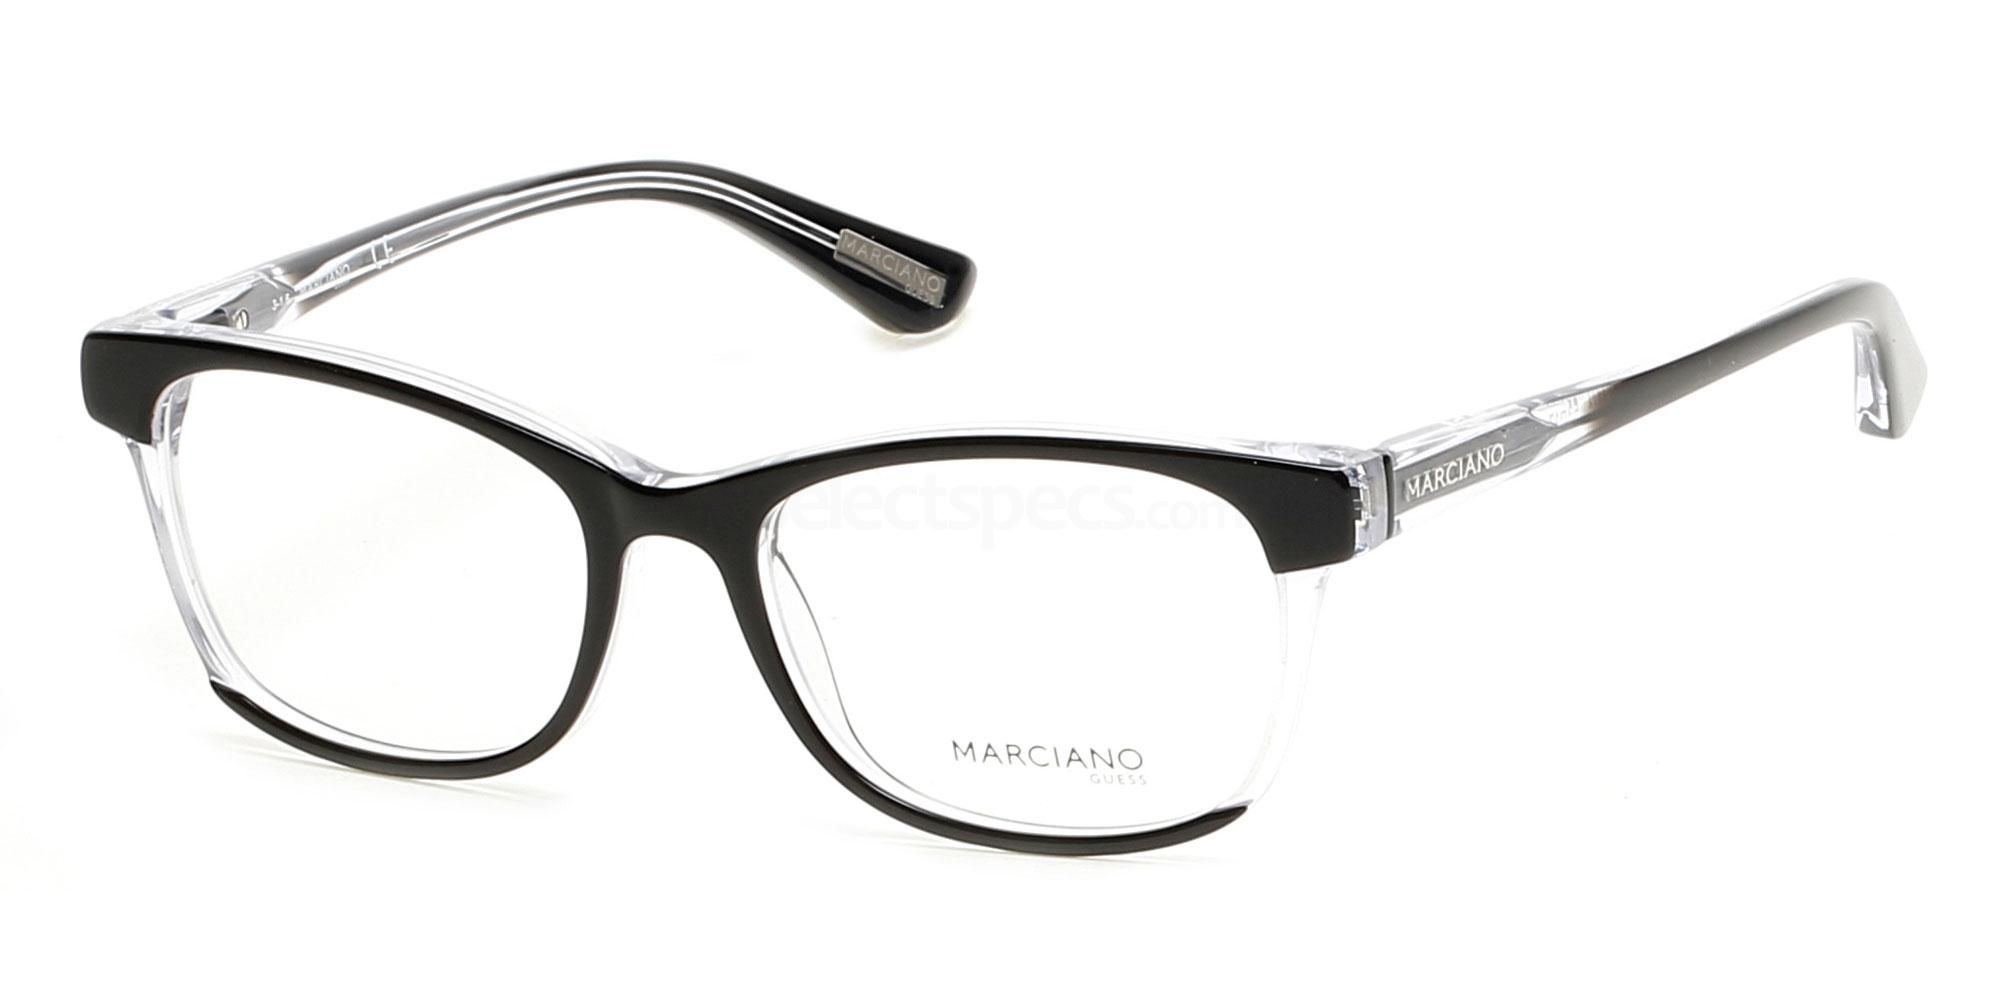 003 GM0288 Glasses, Guess by Marciano